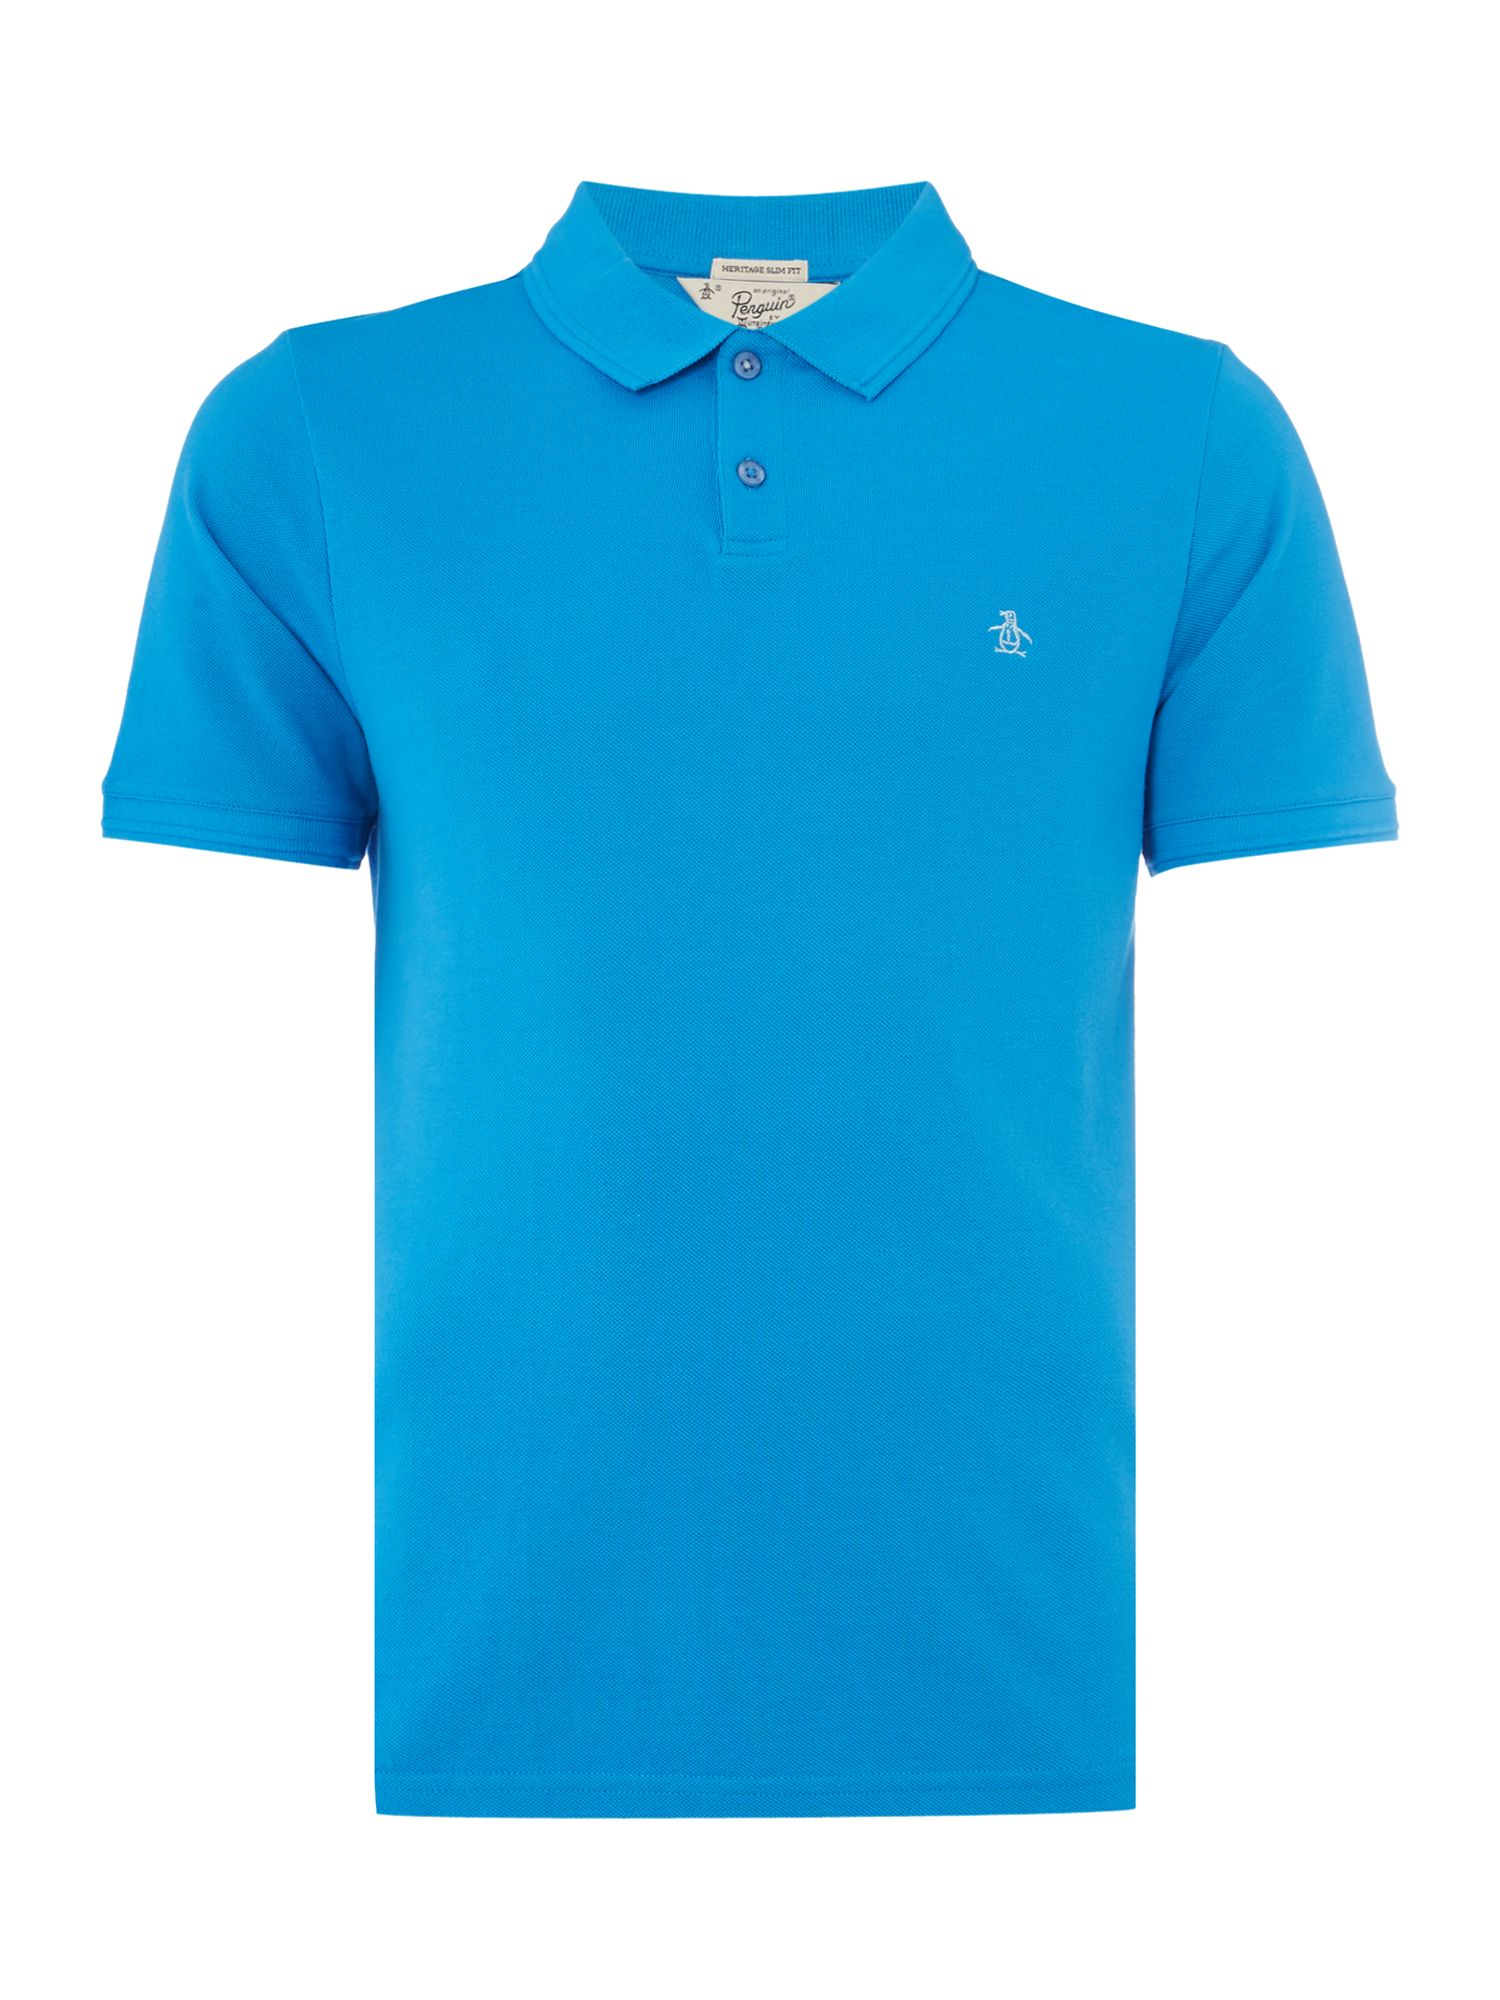 Men's Original Penguin Raised Rib Polo Shirt, Bright Blue